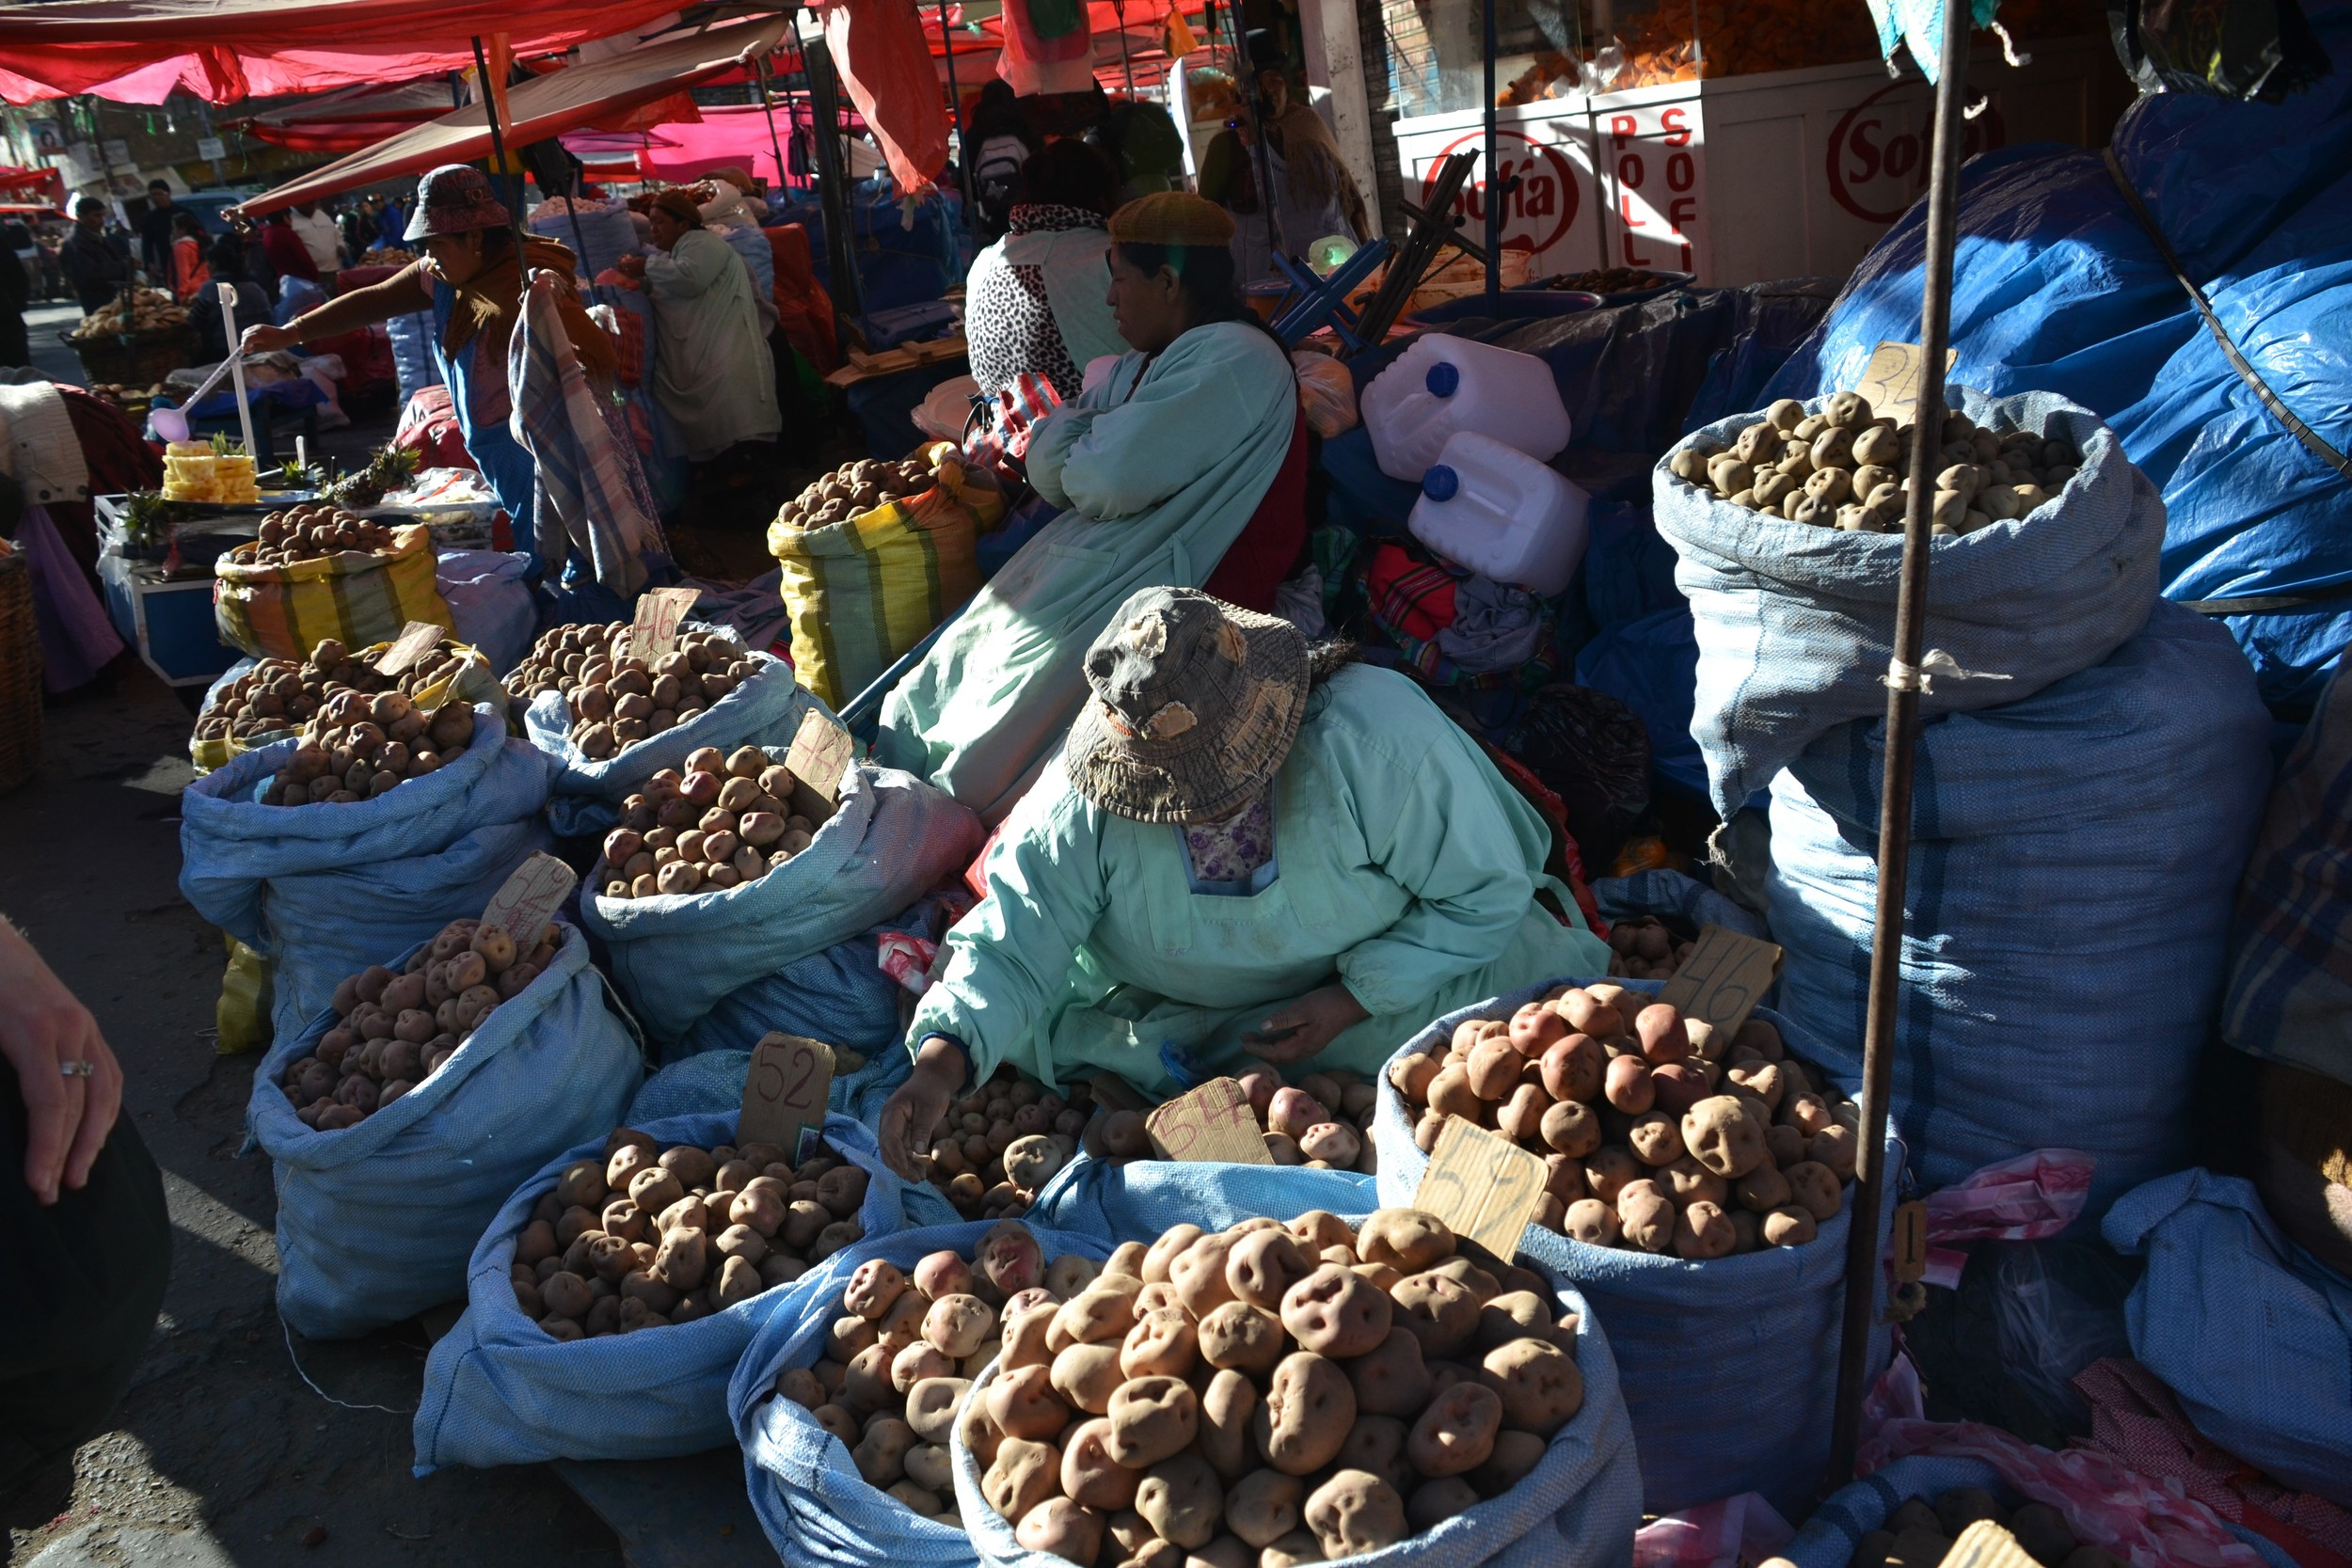 Women selling potatoes in a Bolivian marketplace.